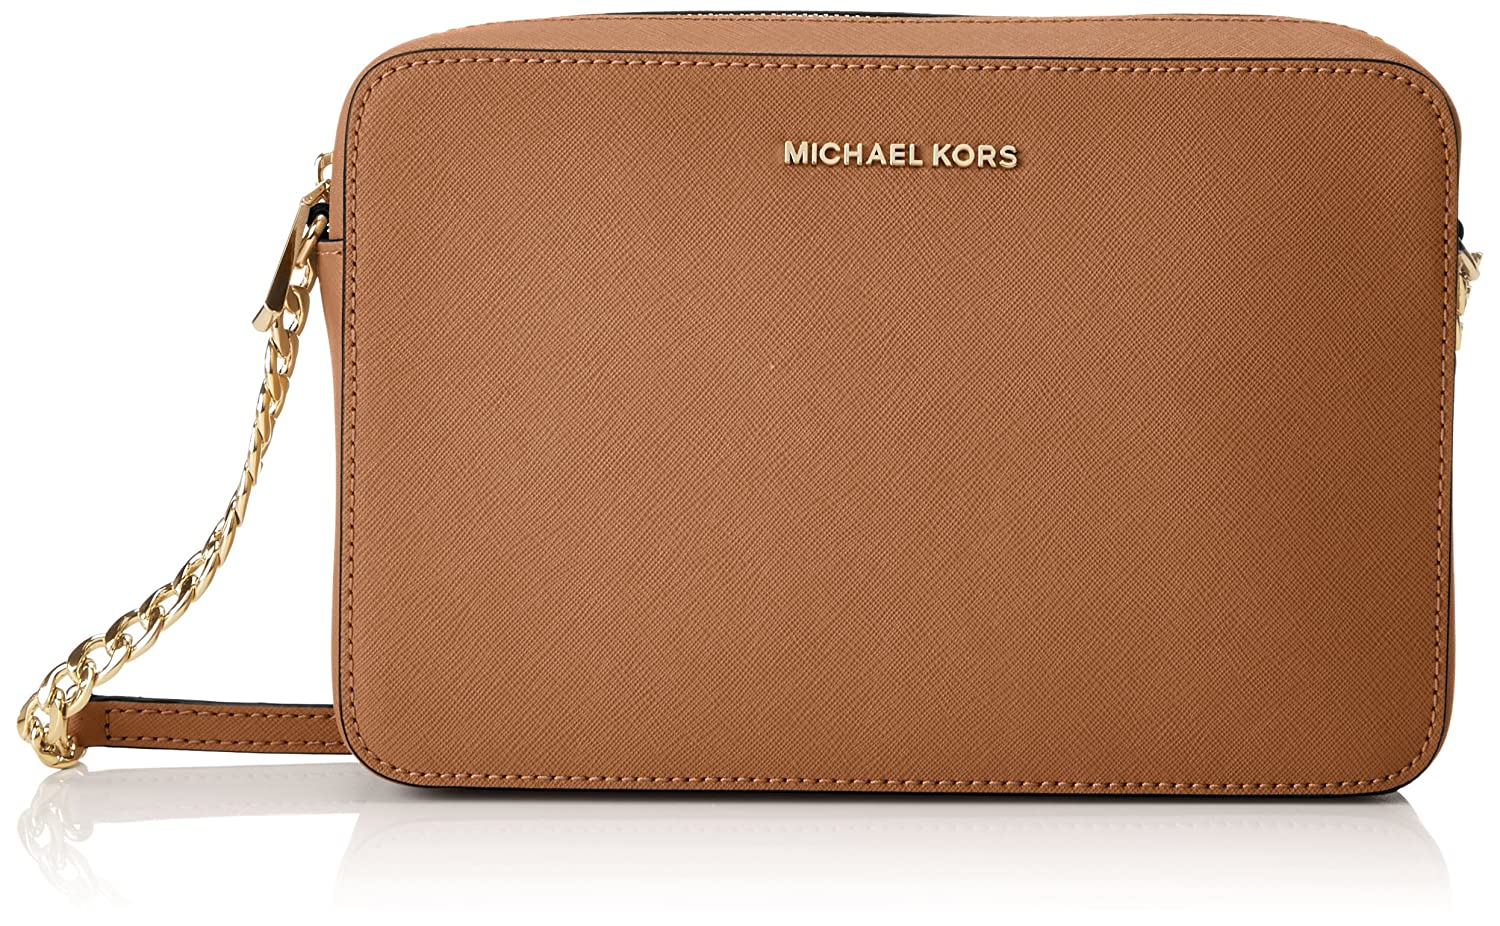 4cfcc72d9c Michael Kors Women s Jet Set Crossbody Leather Bag - Acorn  Handbags   Amazon.com